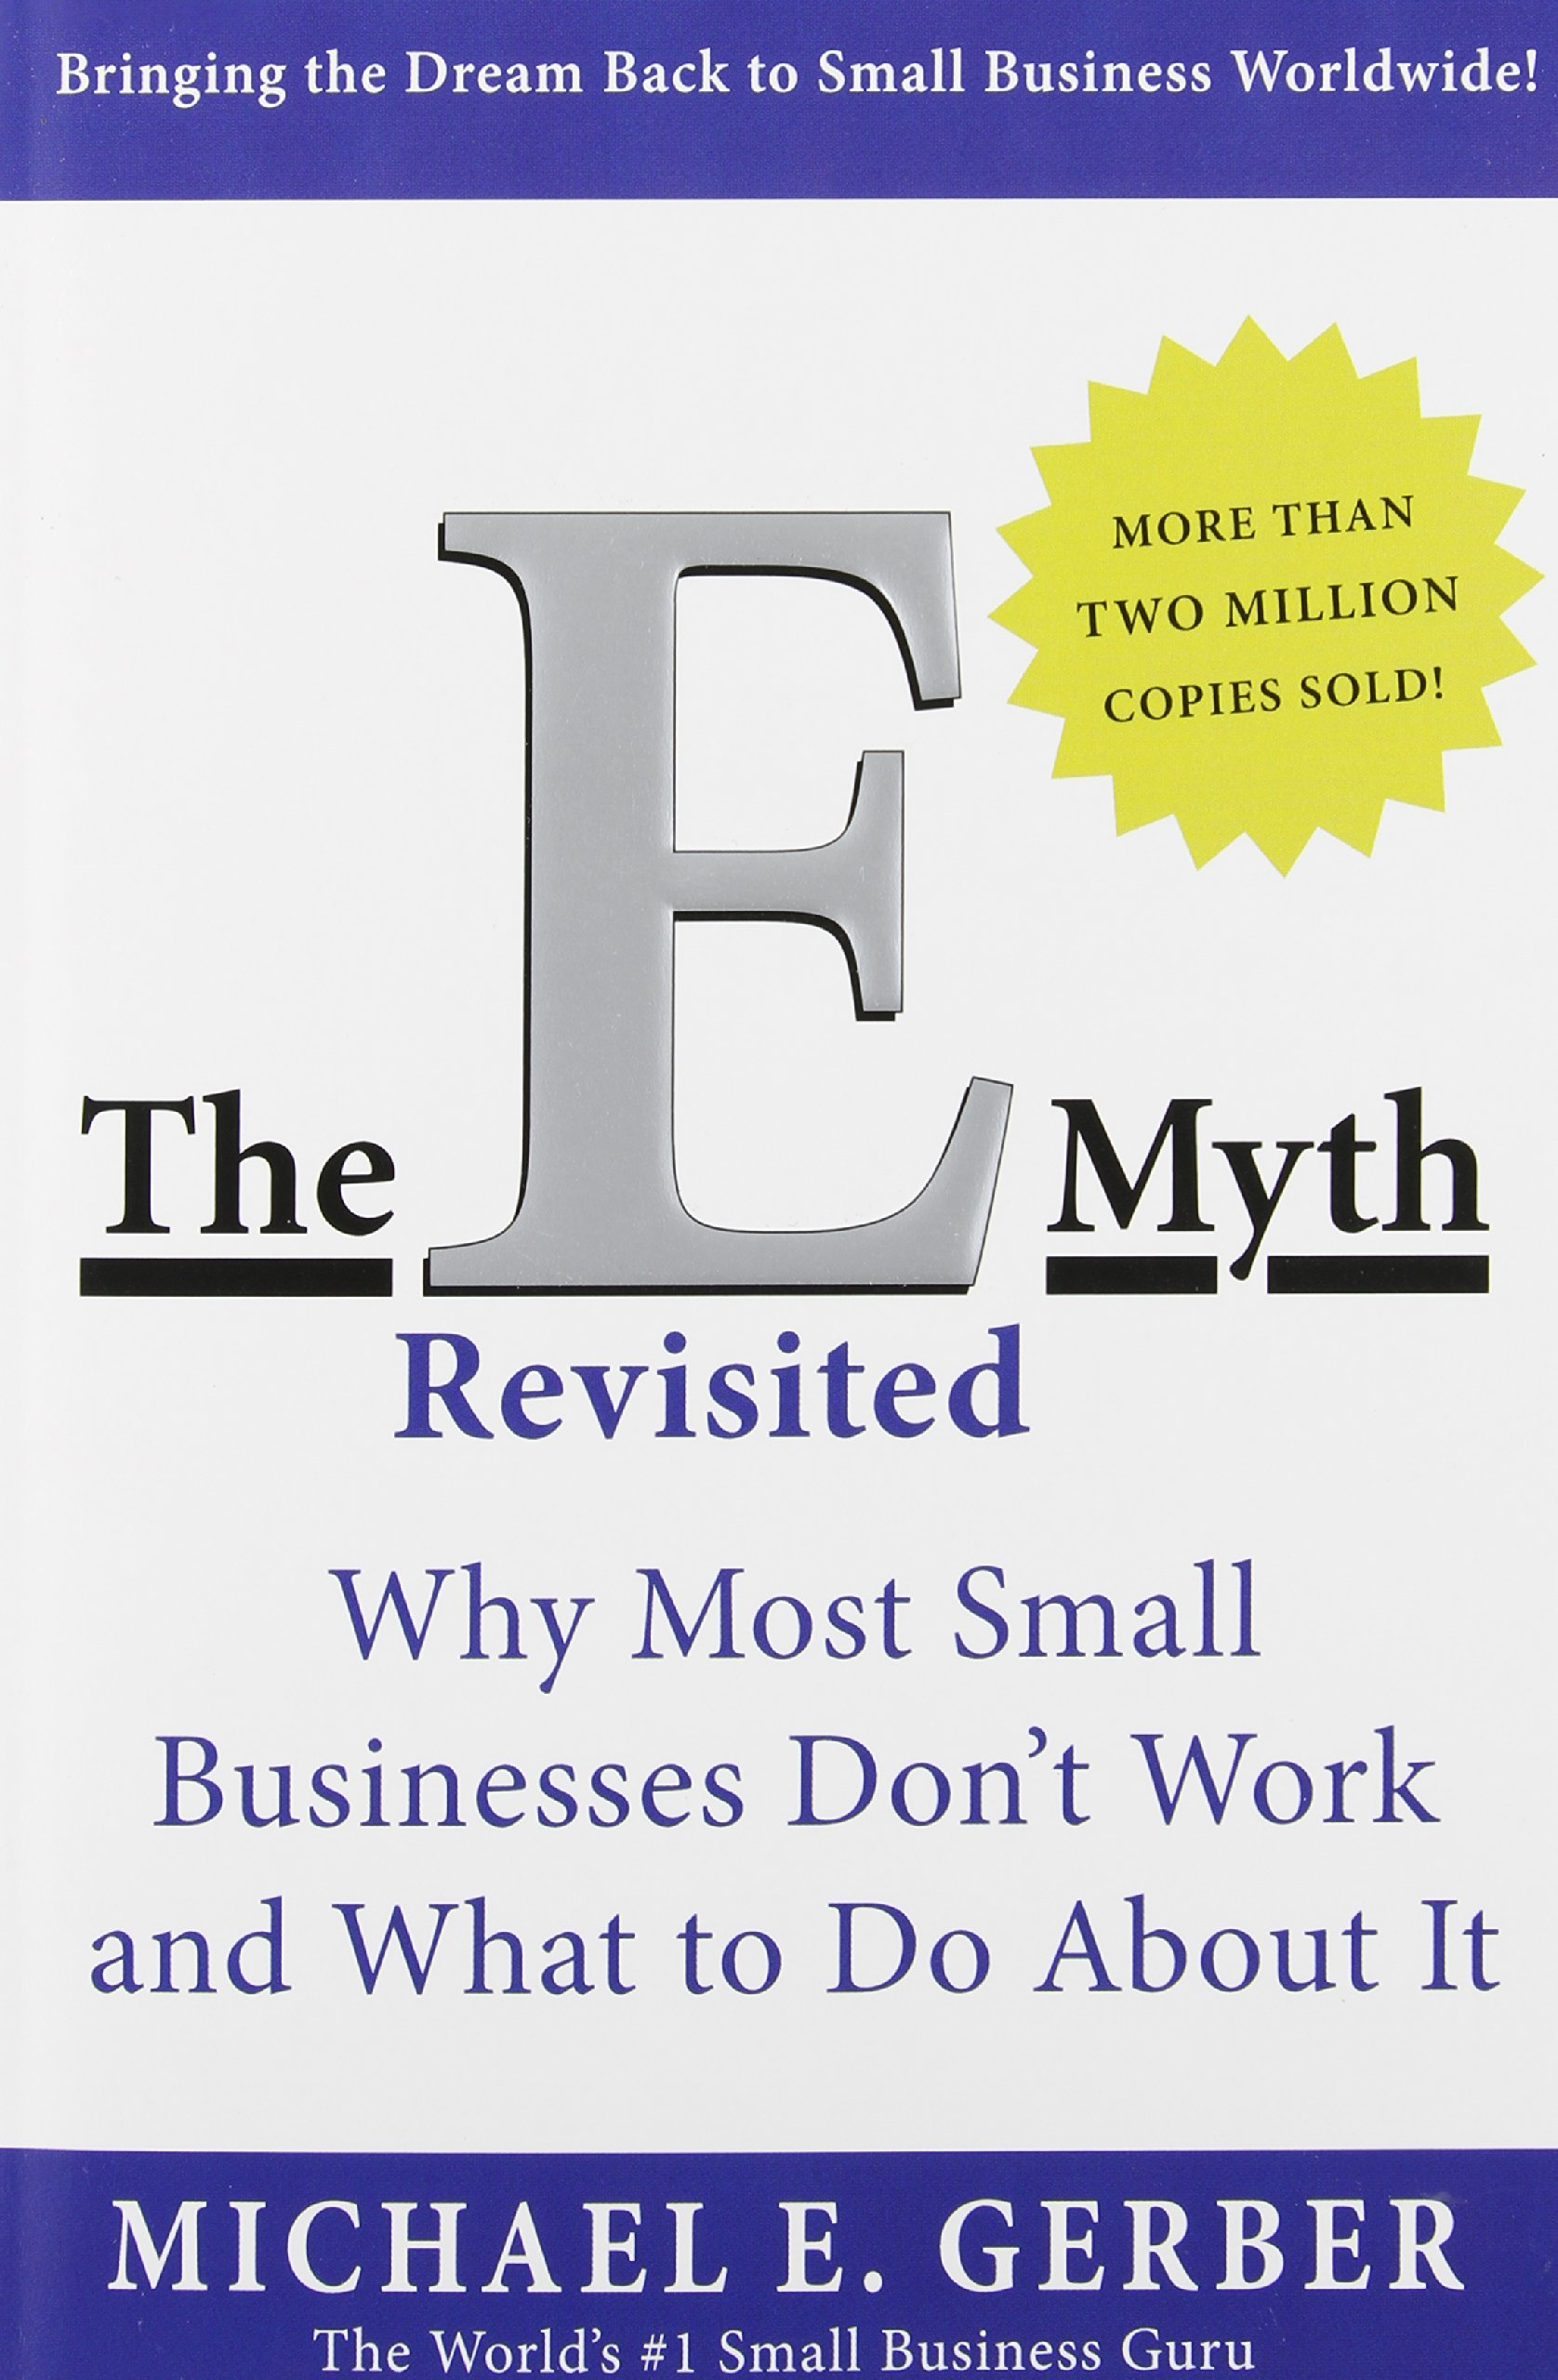 Download the e-myth revisited: why most small businesses don t work a….